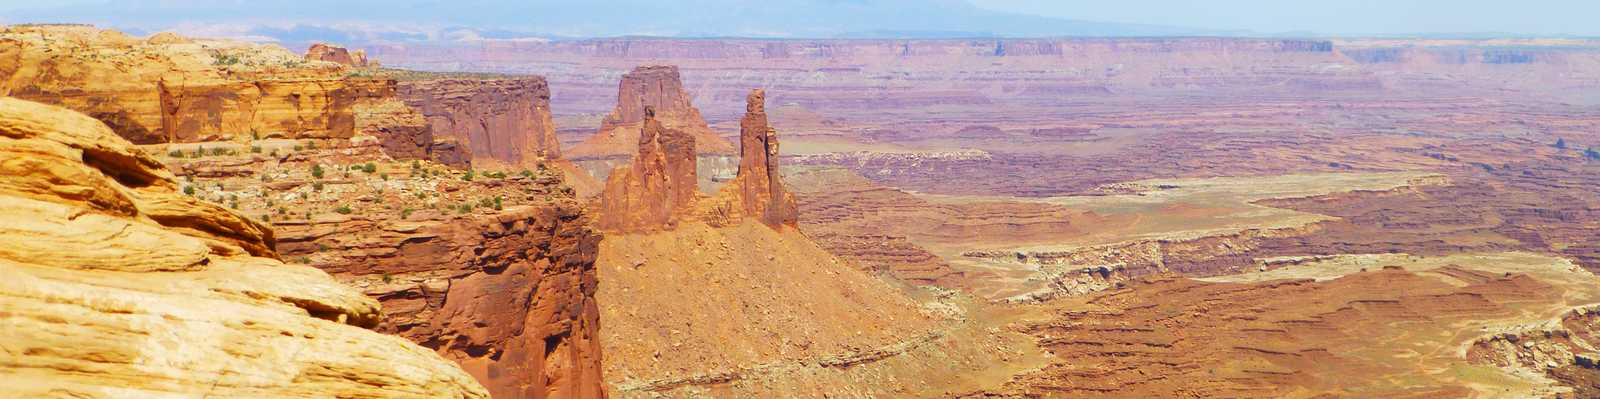 Aussicht im Canyonland National Park